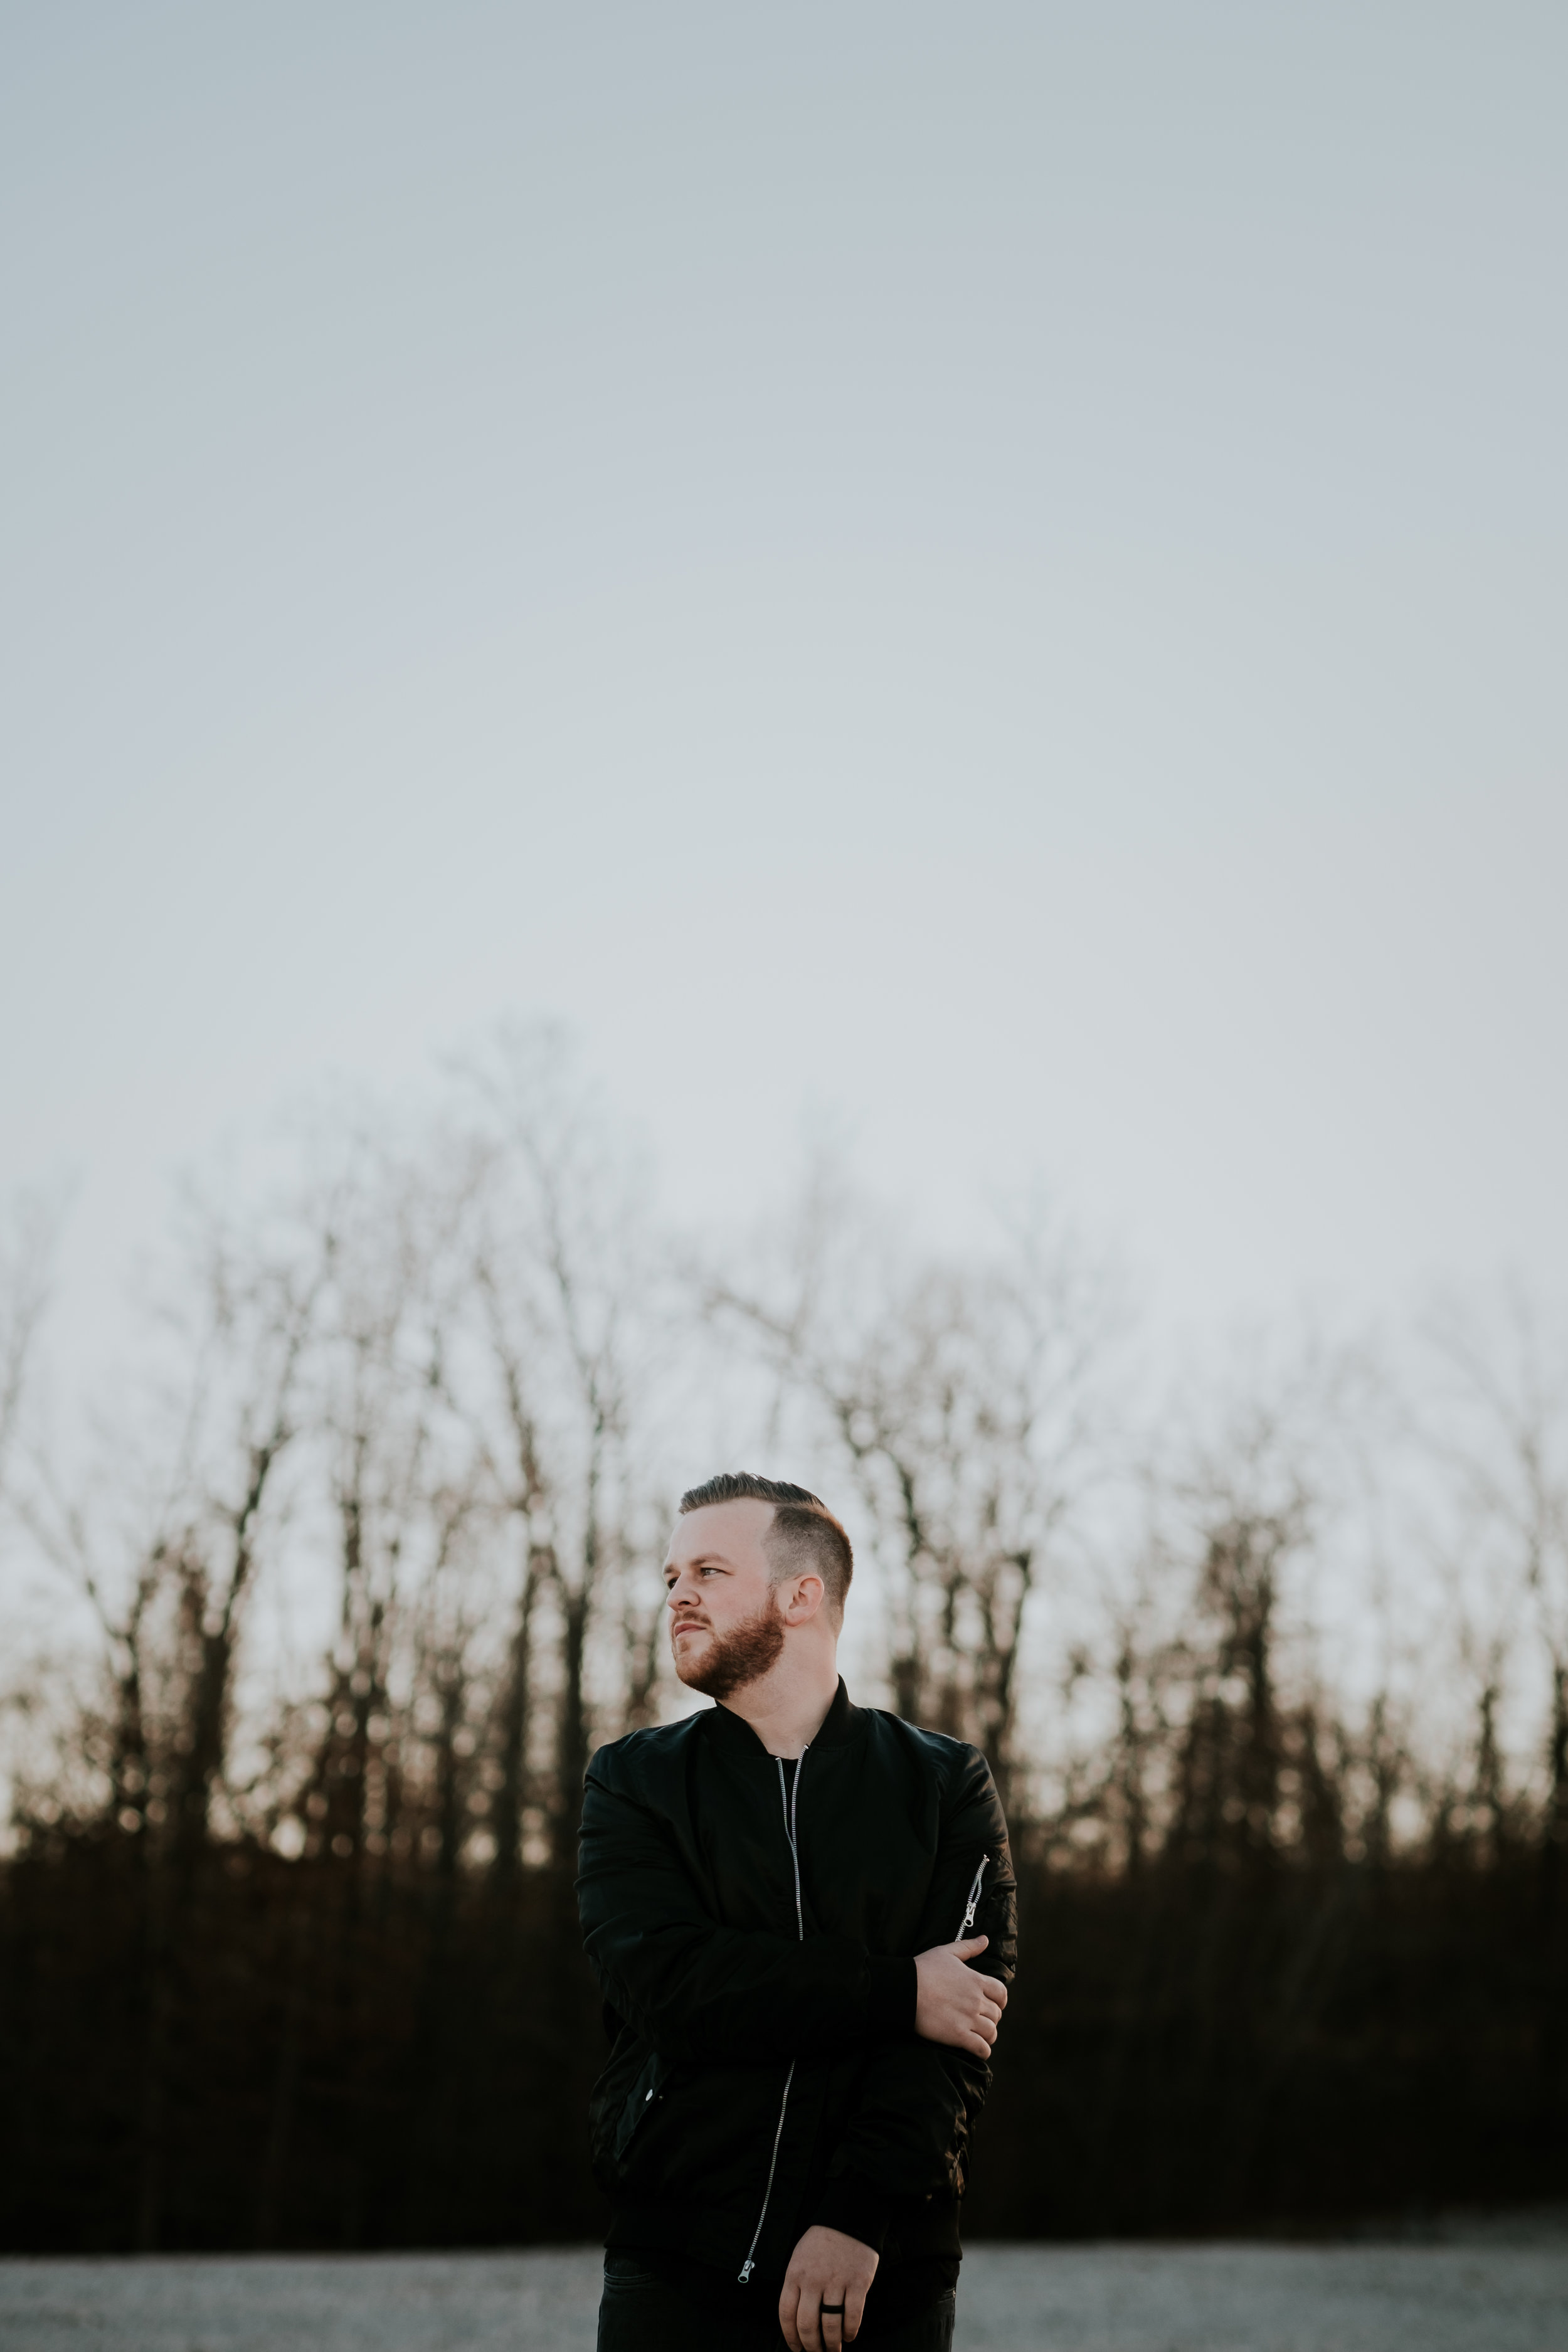 """BIOGRAPHY - Healing is not a process you easily stumble upon. For Shane Schauer, it's been a life full of experiences combined with God's continual grace. This story has culminated into Shane's debut EP, """"It's Not Over""""."""